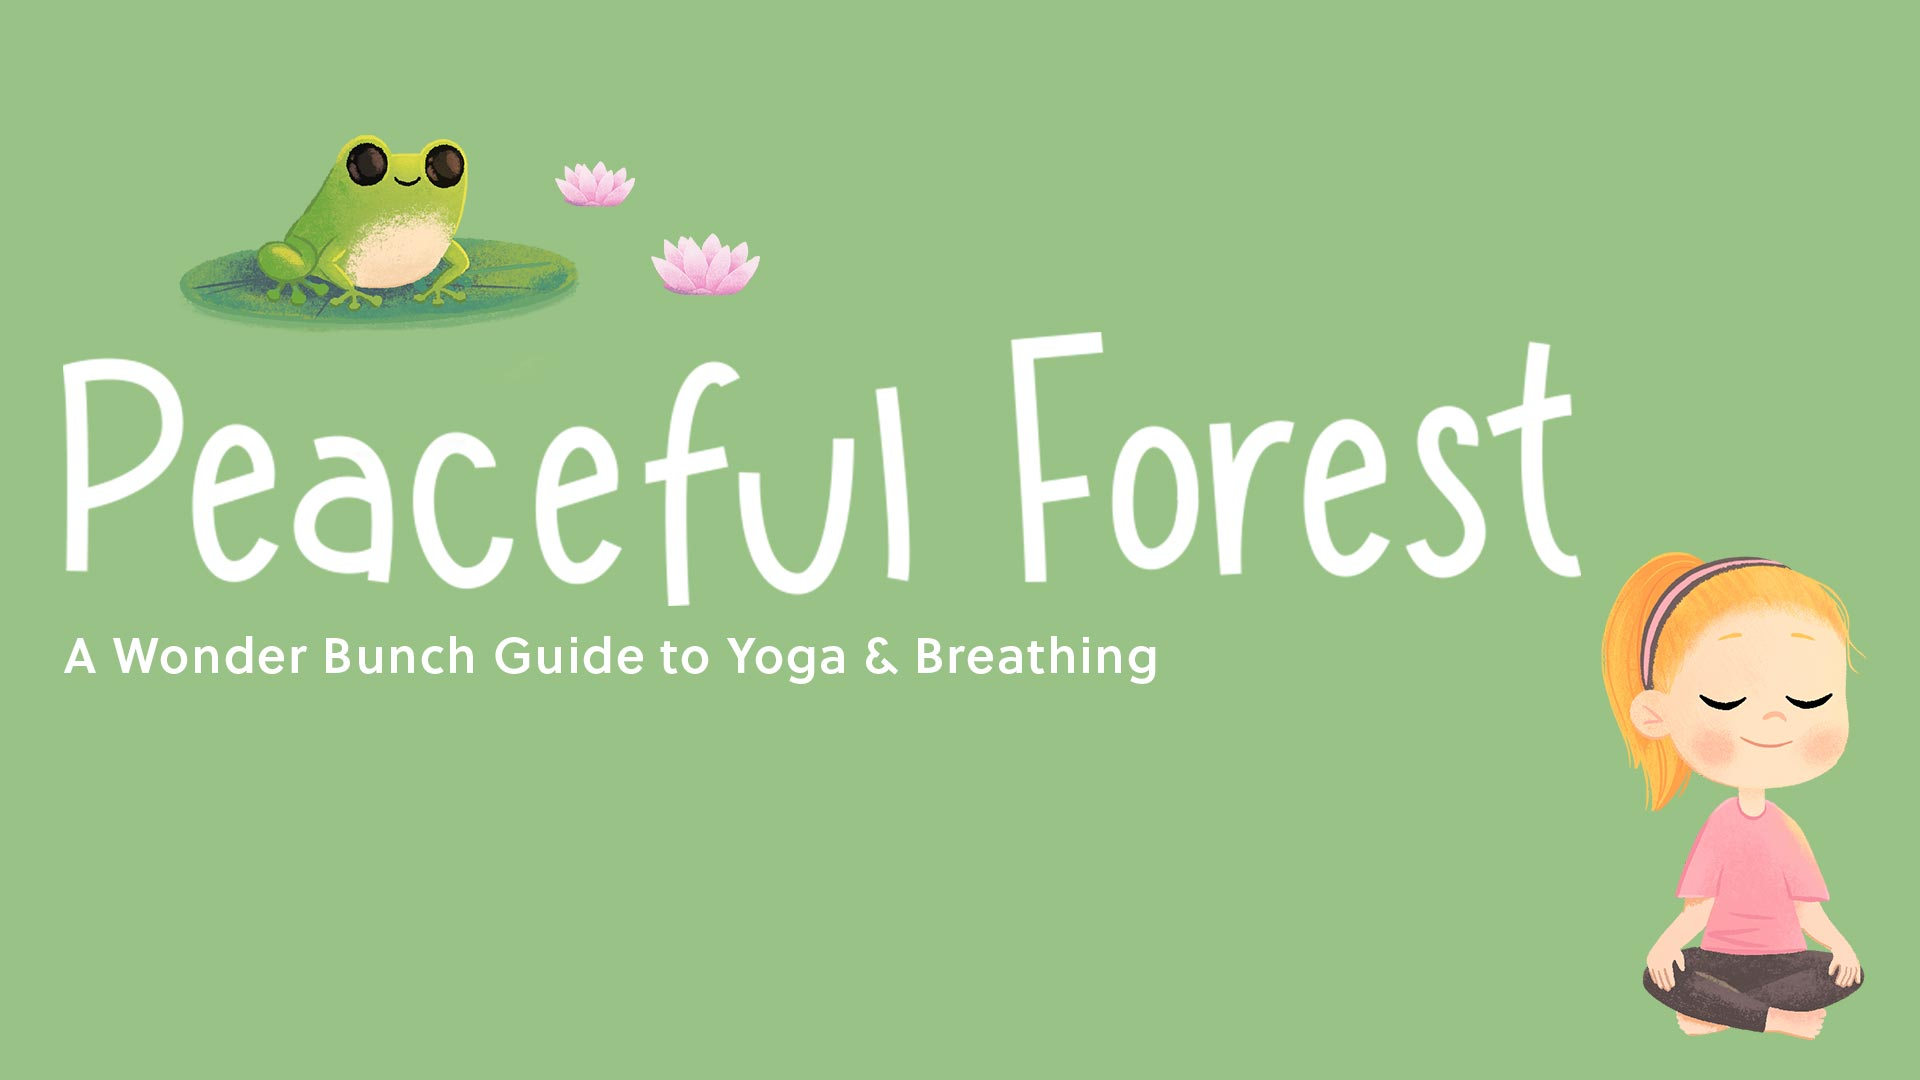 Peaceful Forest - A Wonder Bunch Guide to Yoga and Breathing